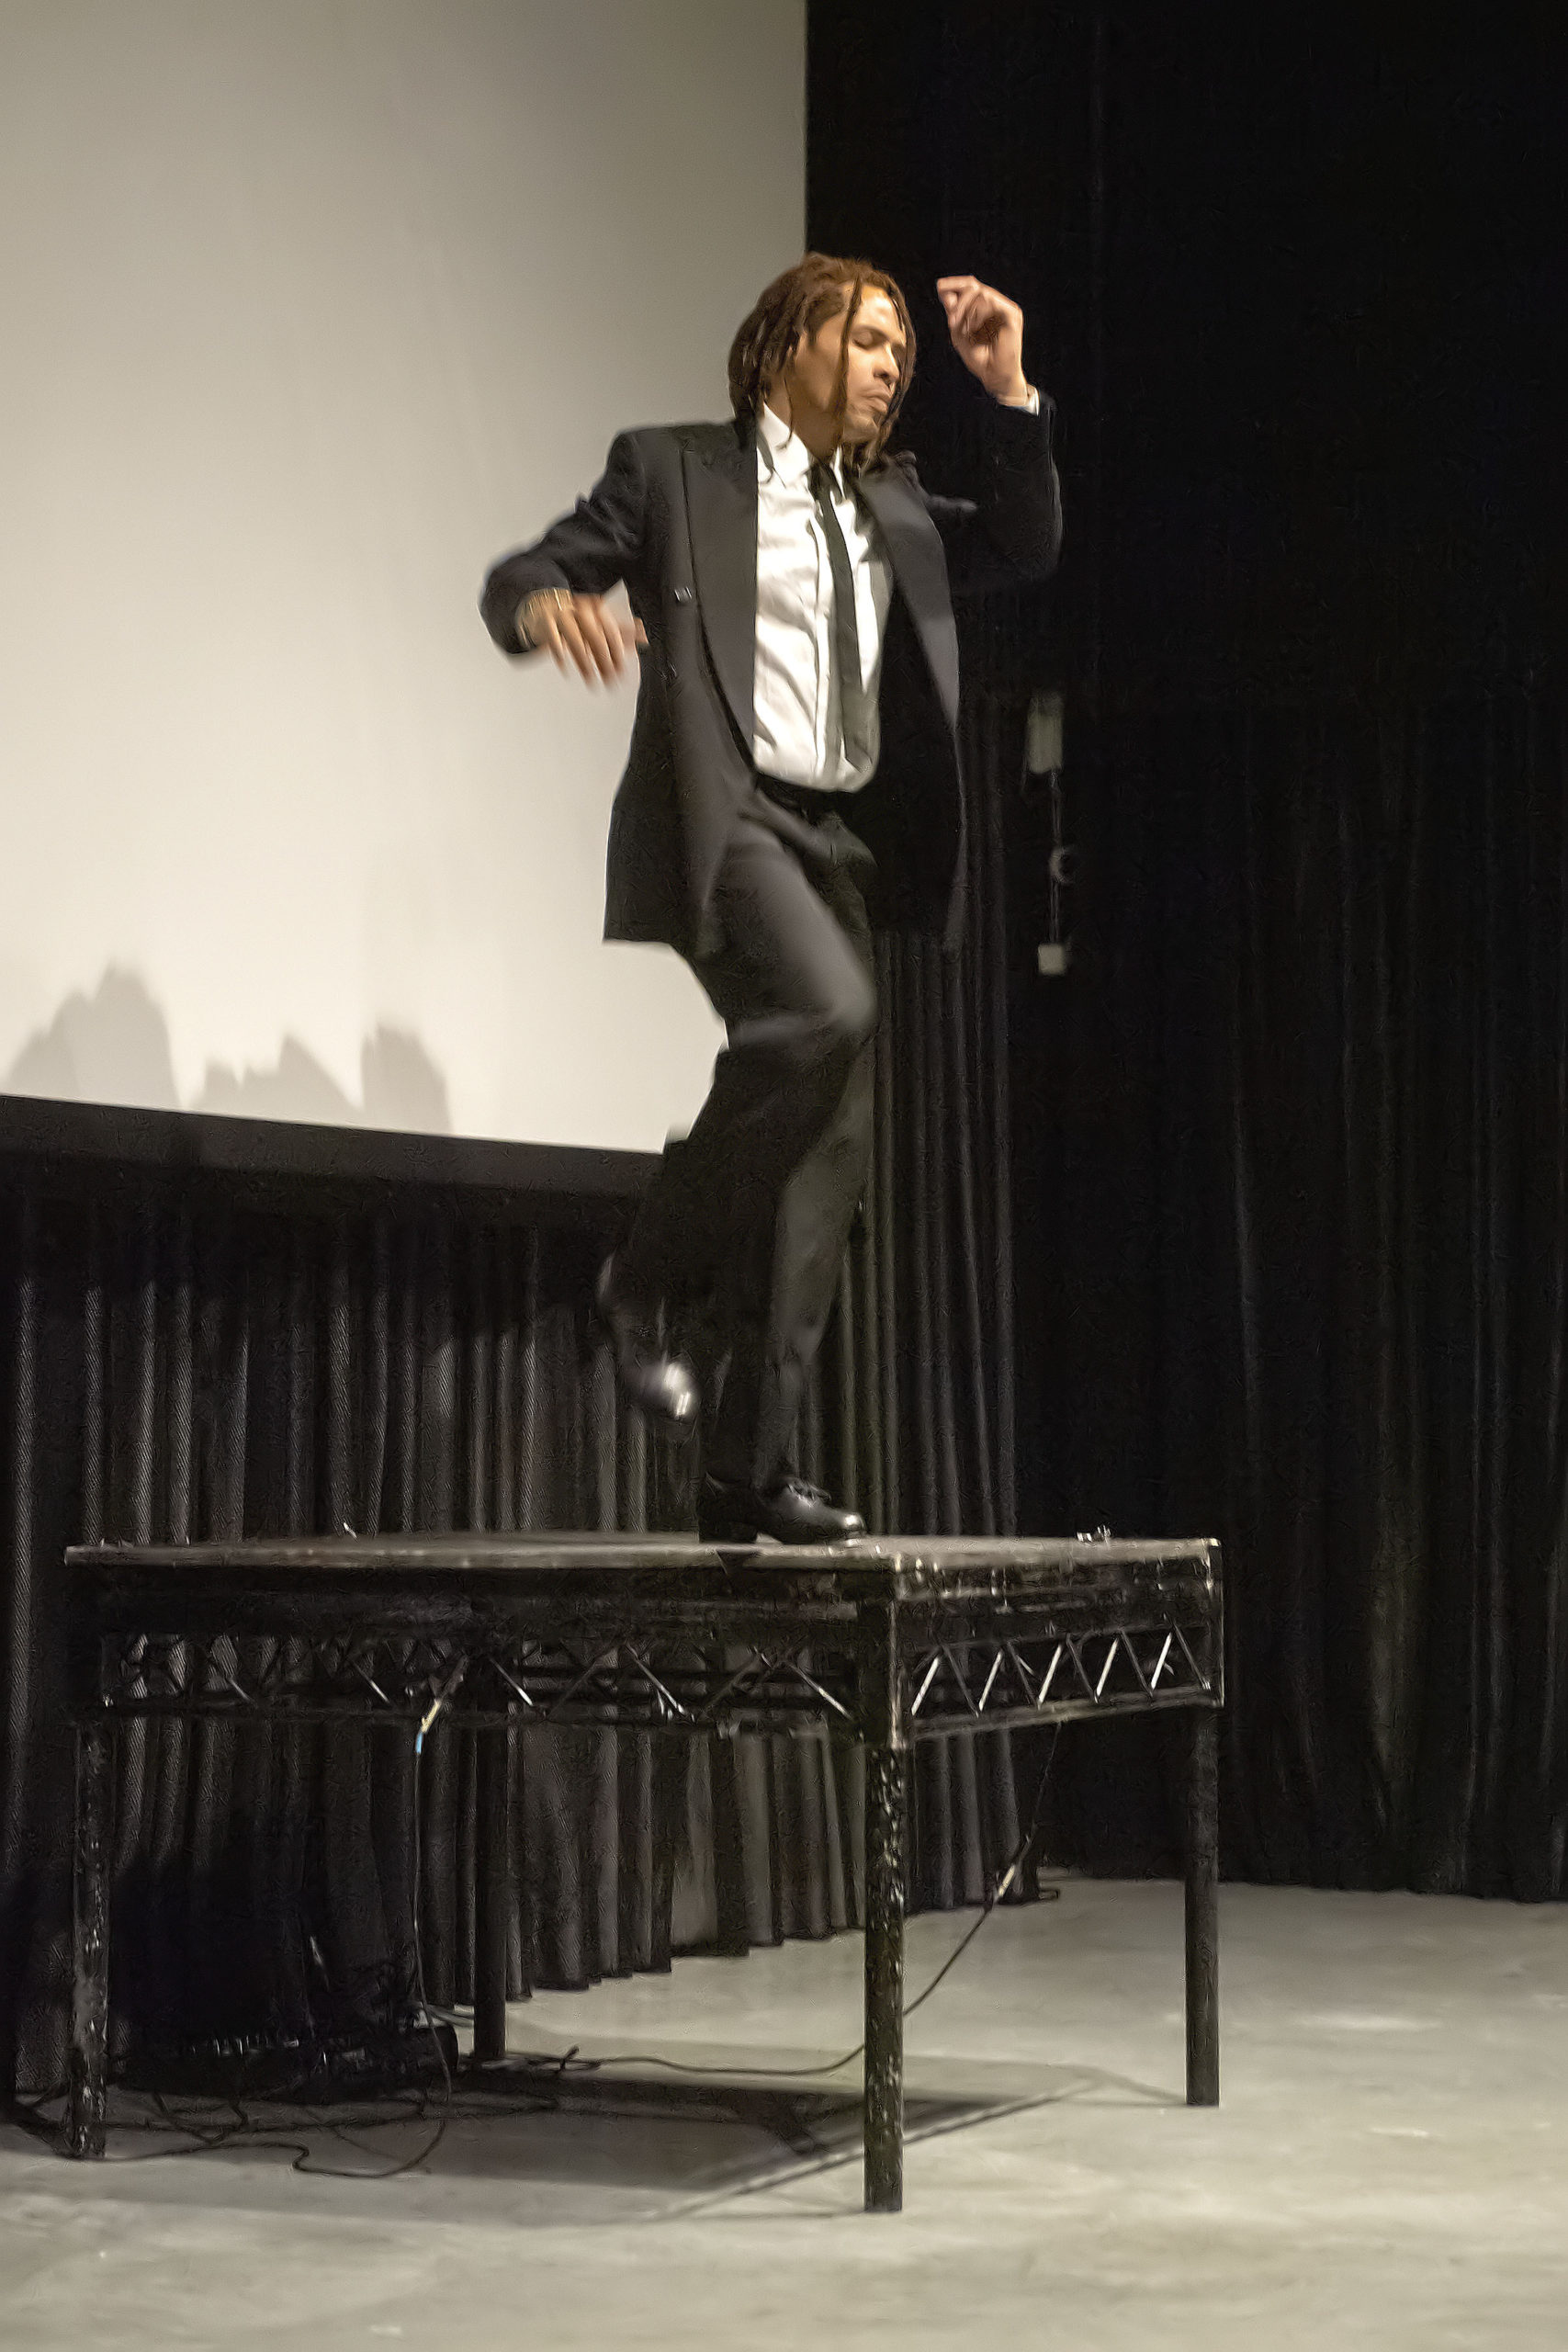 Tap-dancing legend Omar Edwards performs a solo during the